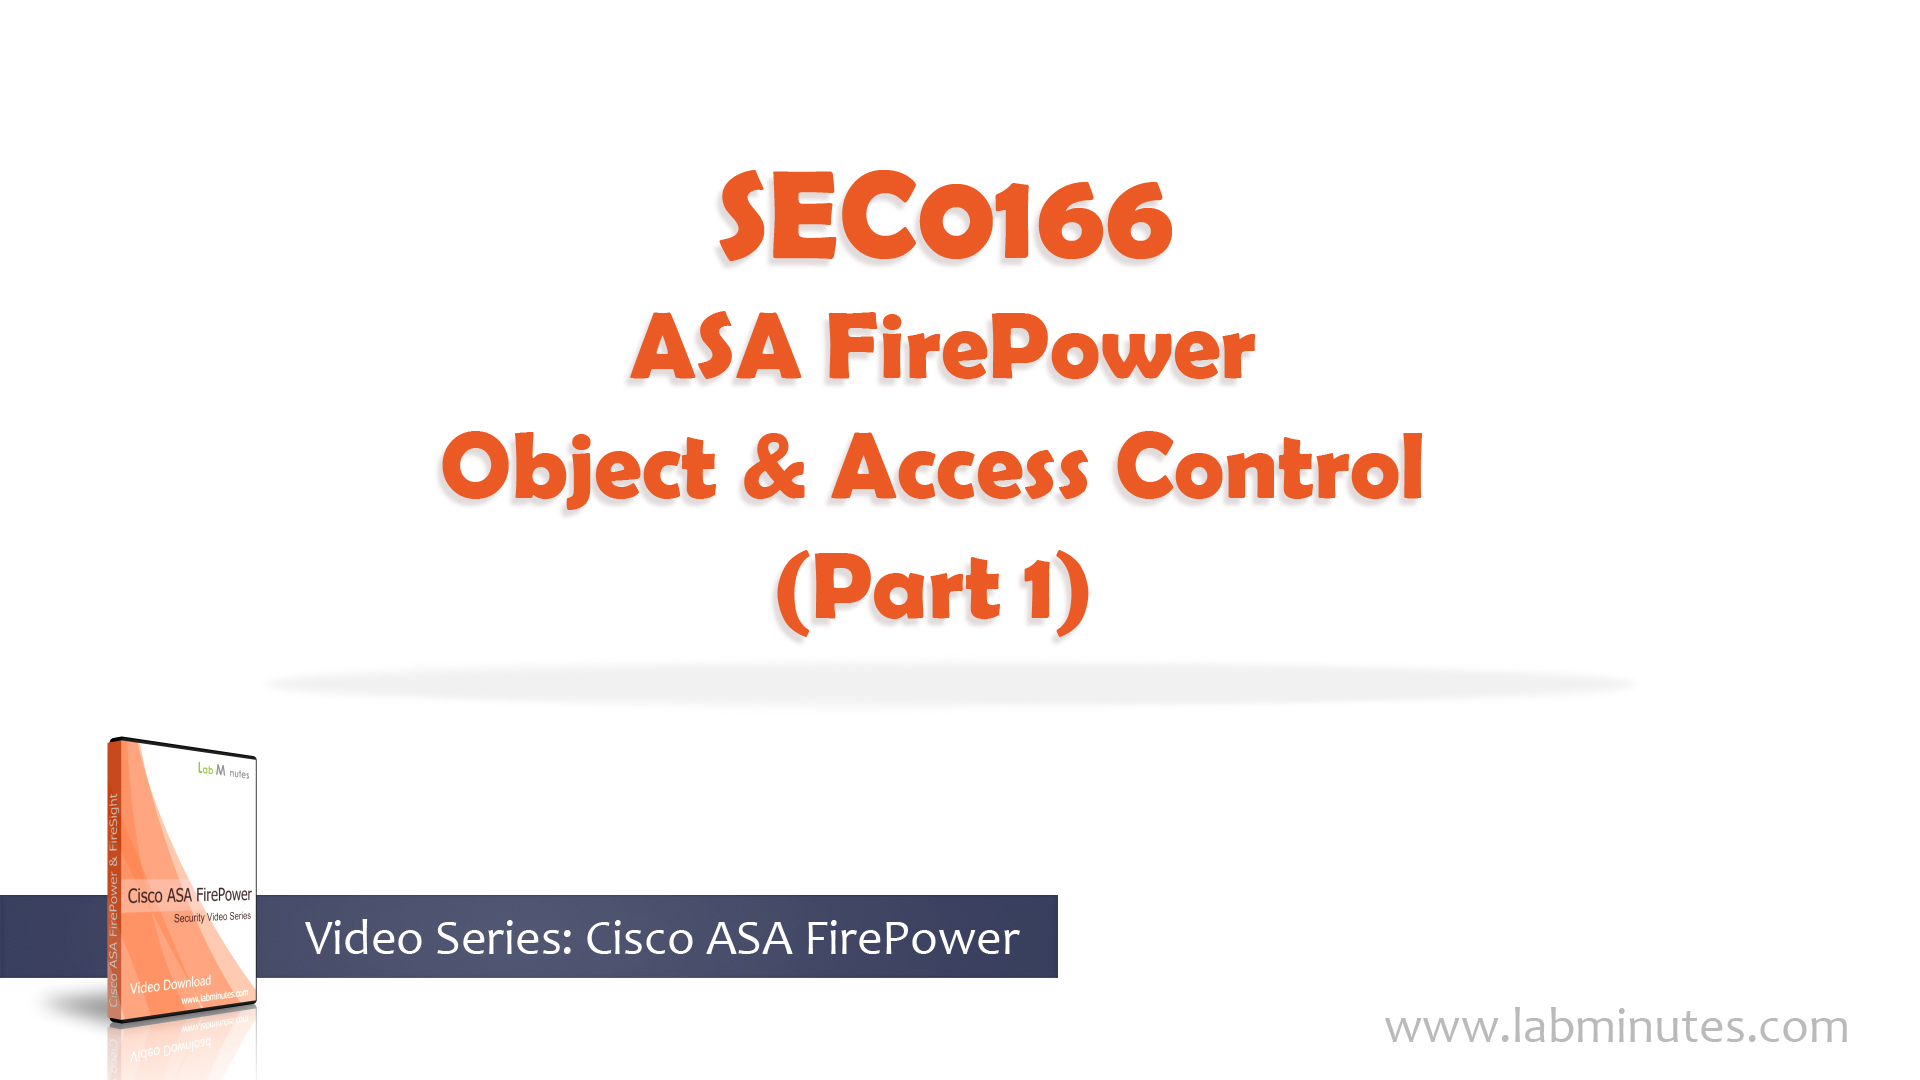 How to Configure Cisco ASA FirePower Object and Access